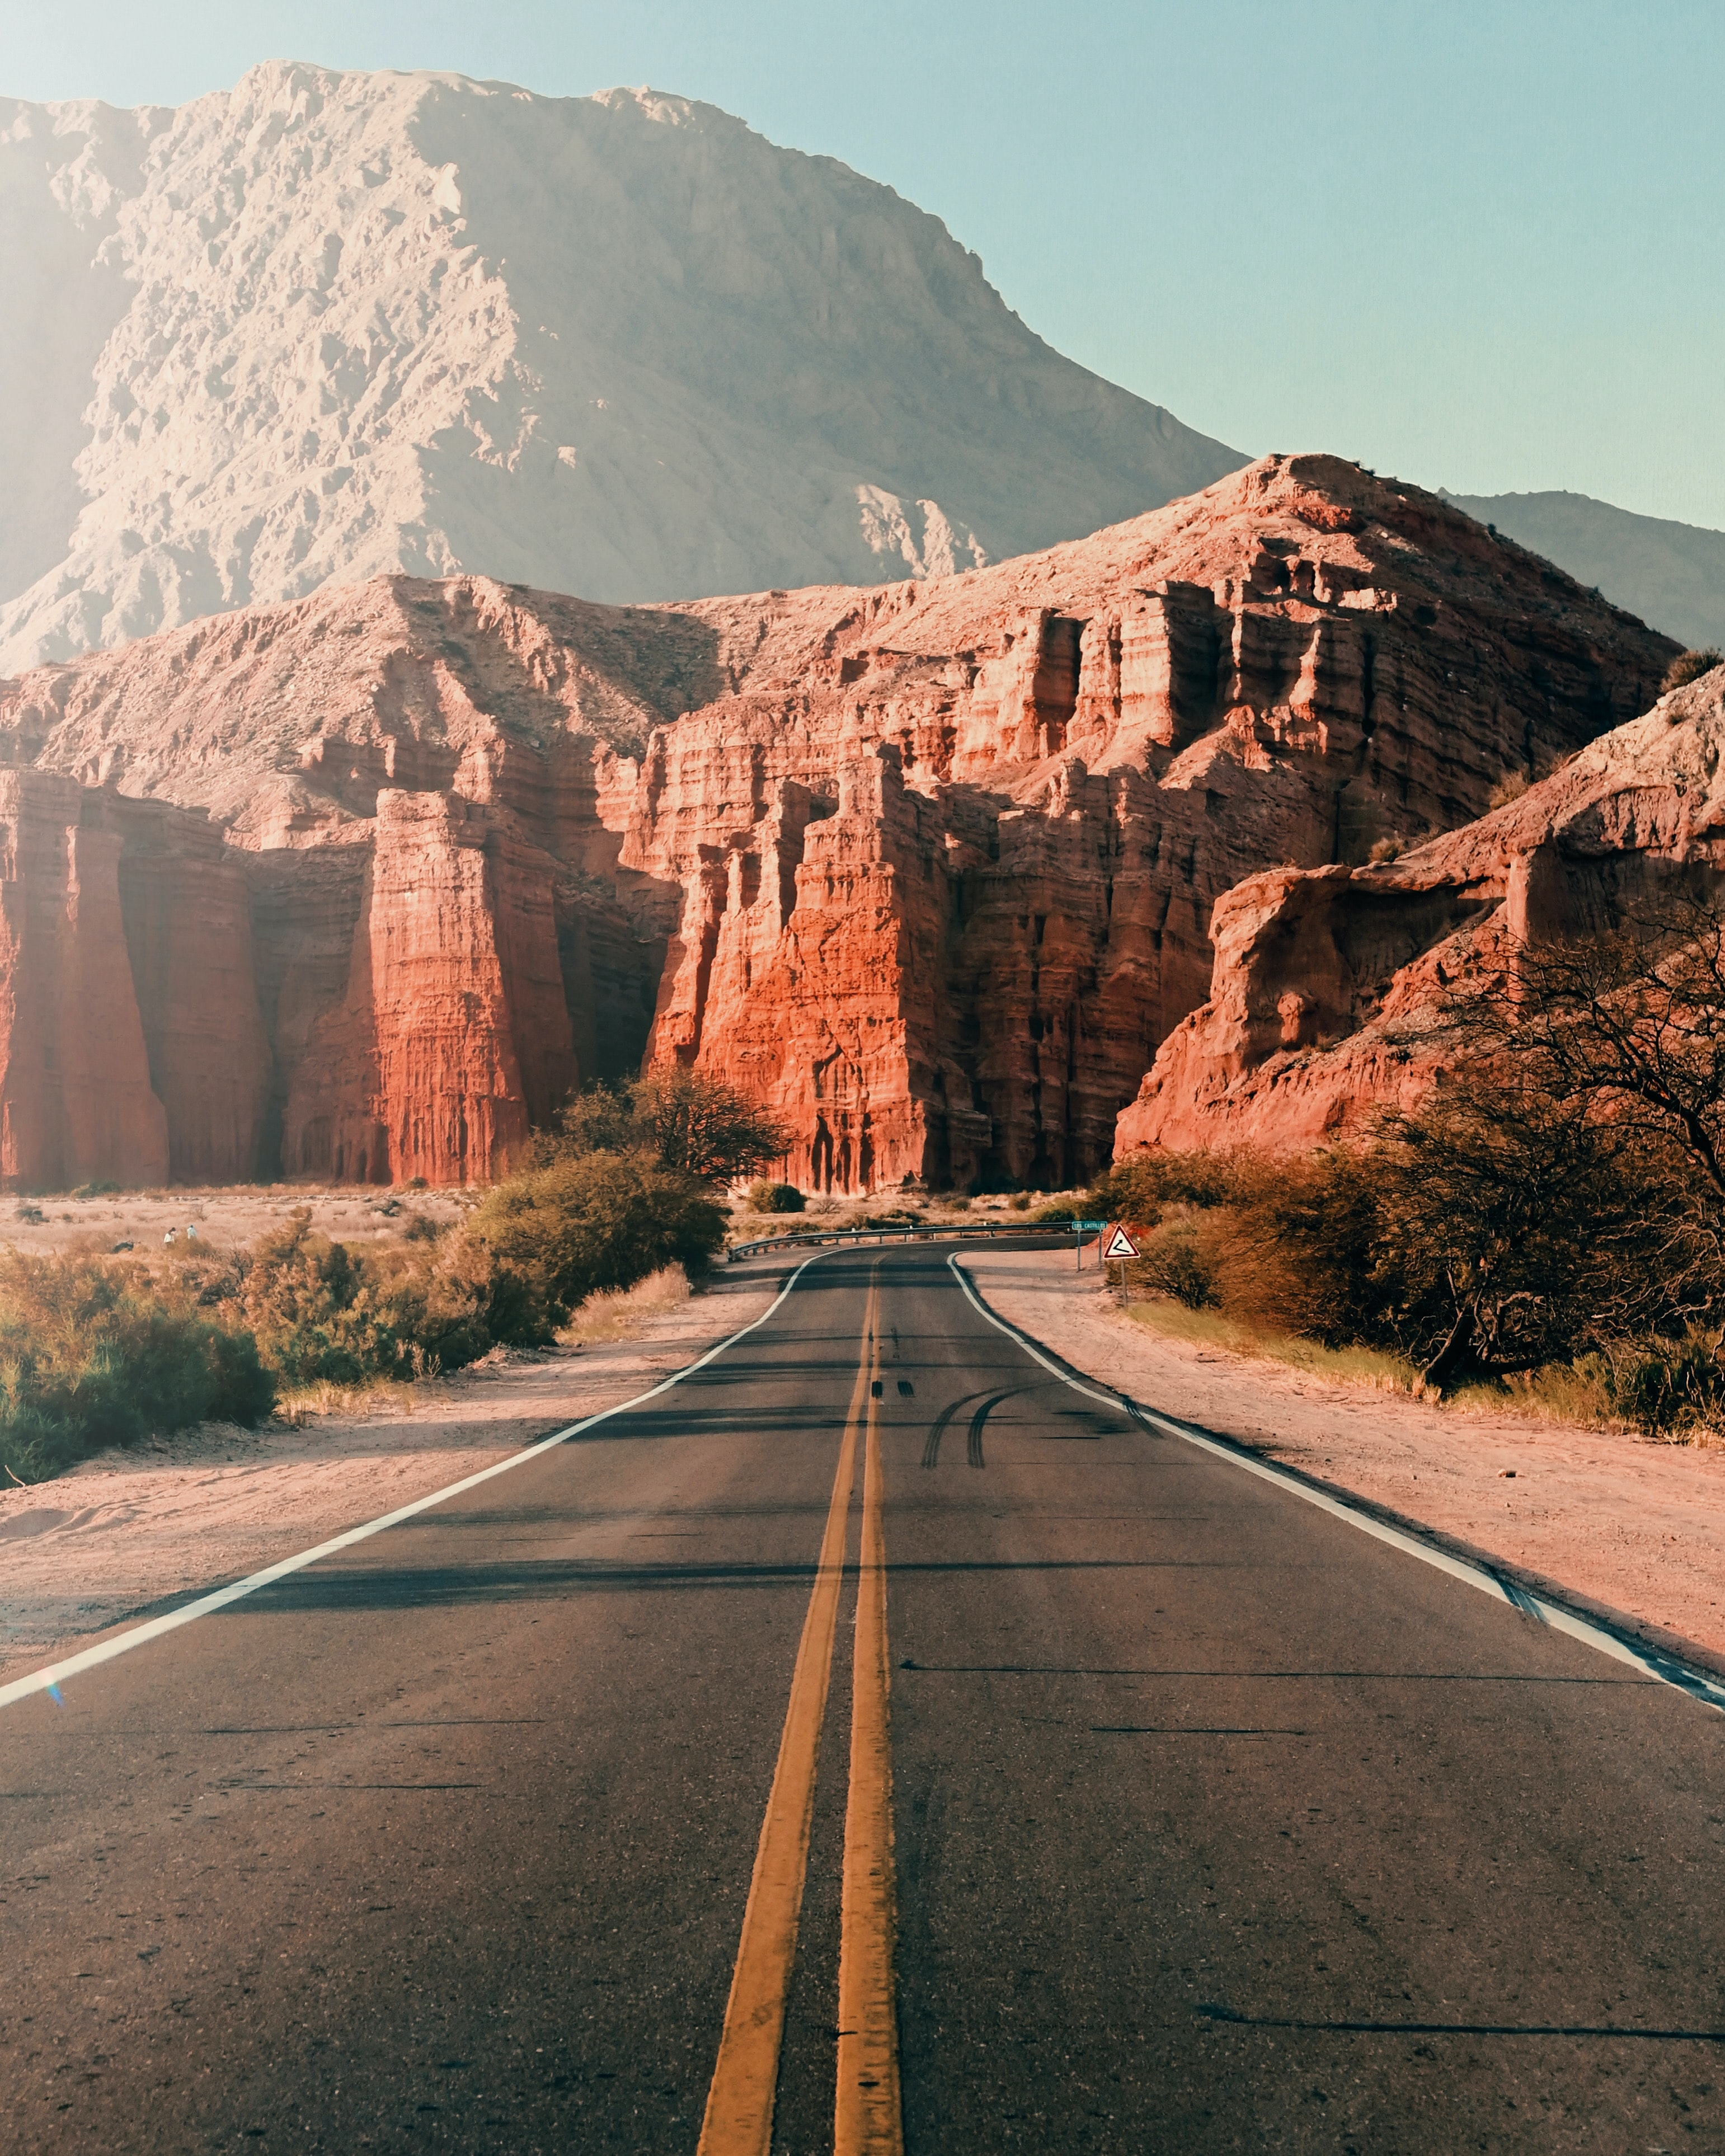 114891 Screensavers and Wallpapers Landscape for phone. Download Road, Asphalt, Rocks, Nature, Mountains, Landscape pictures for free